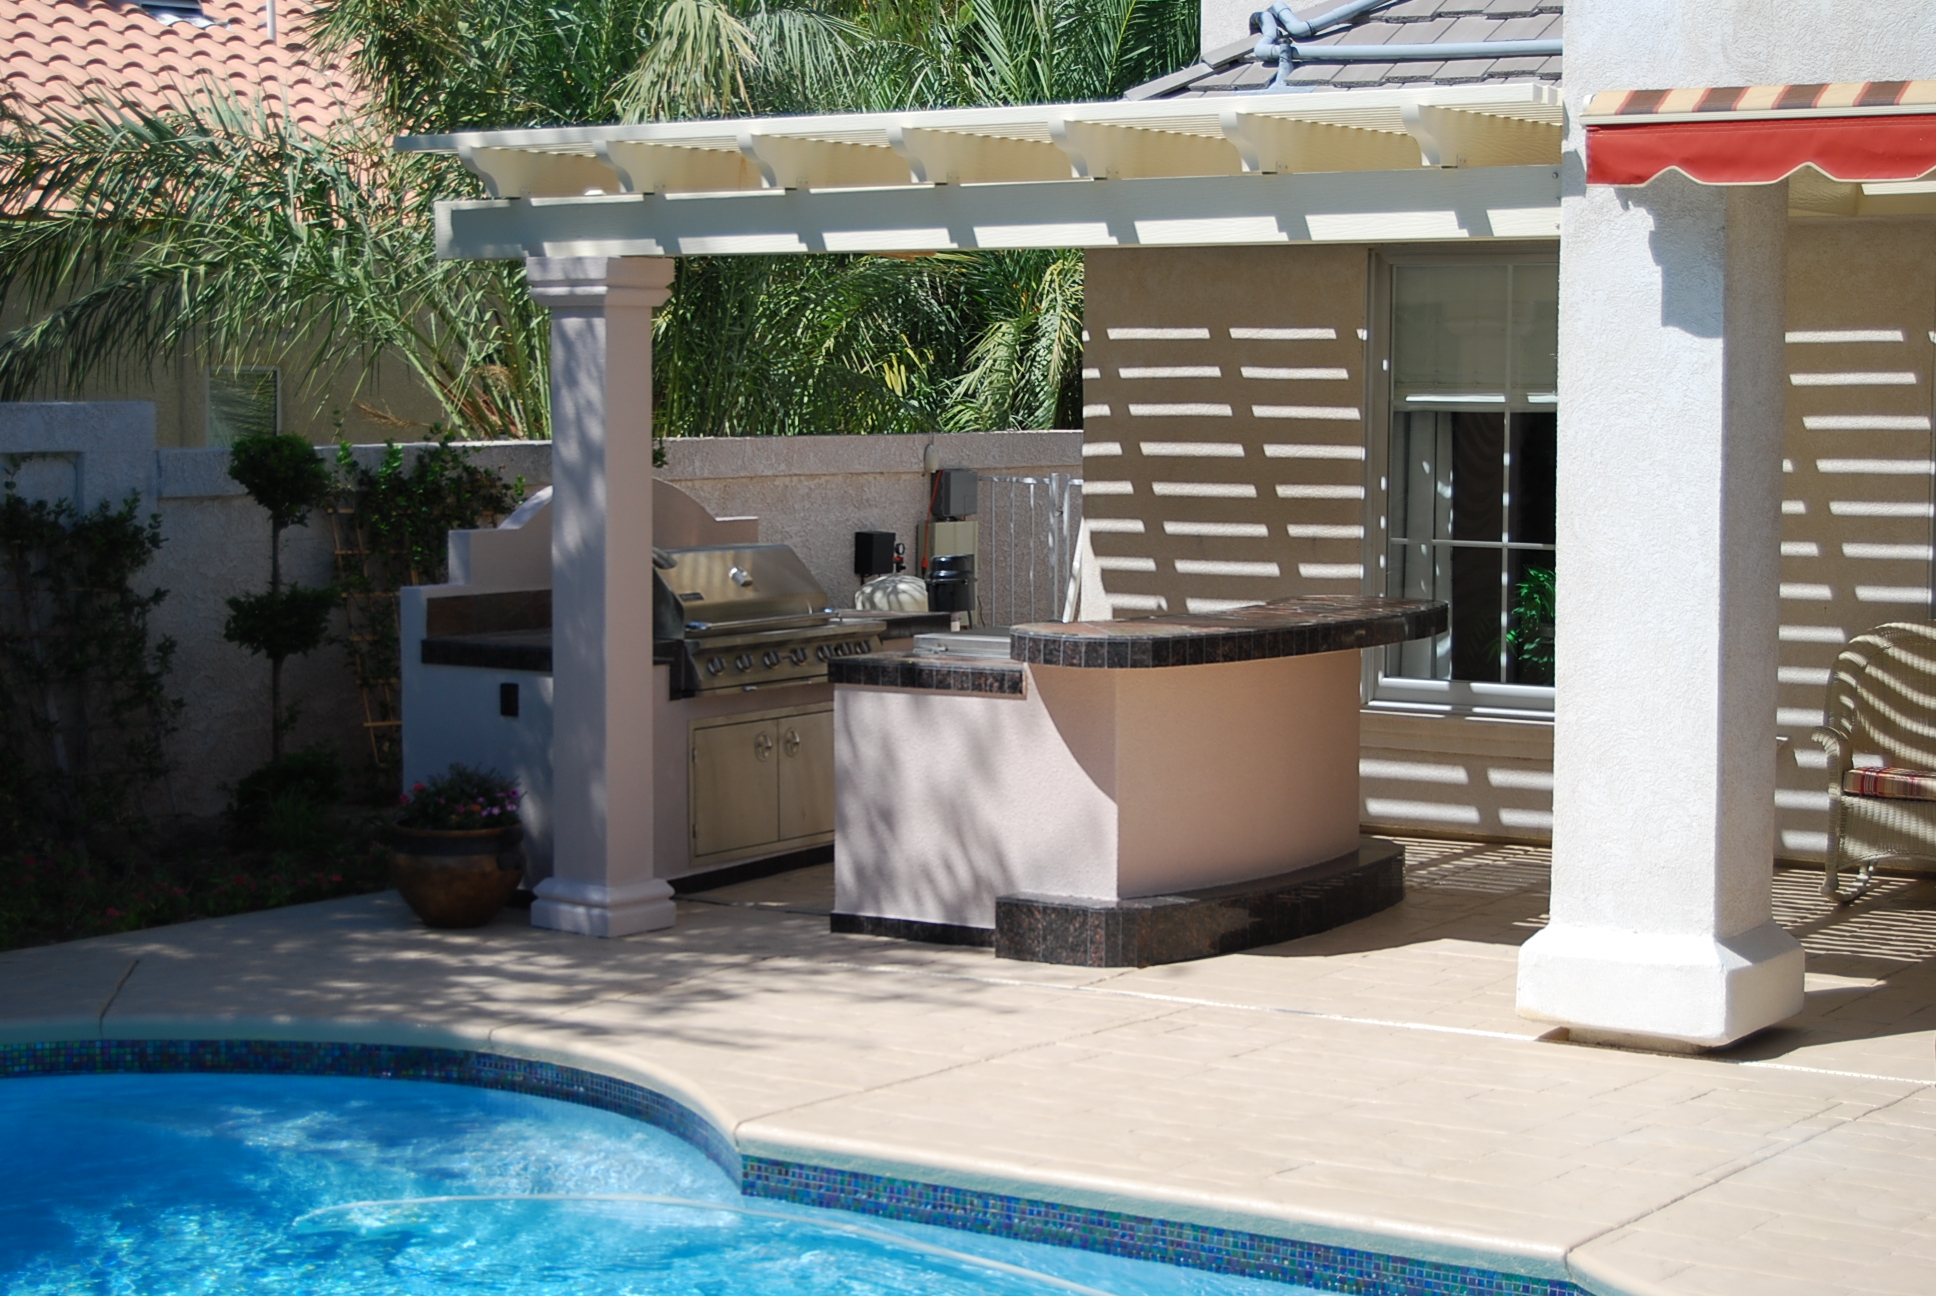 Island 026 Fullsize Las Vegas Outdoor Kitchens And Barbecues